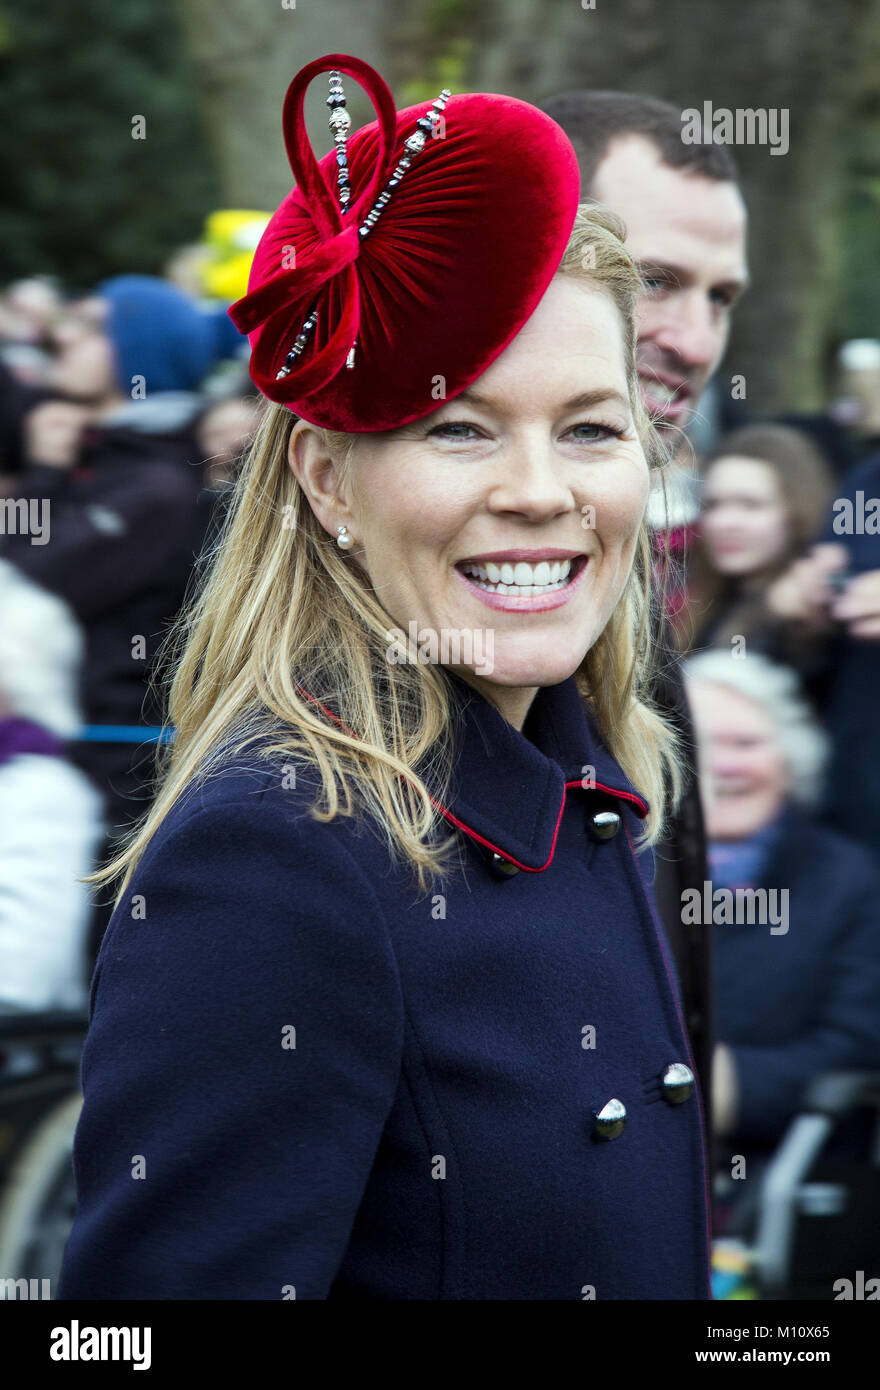 The British Royal family arrive at Sandringham to celebrate Christmas Day  Featuring: Autumn Phillips Where: Sandringham, - Stock Image